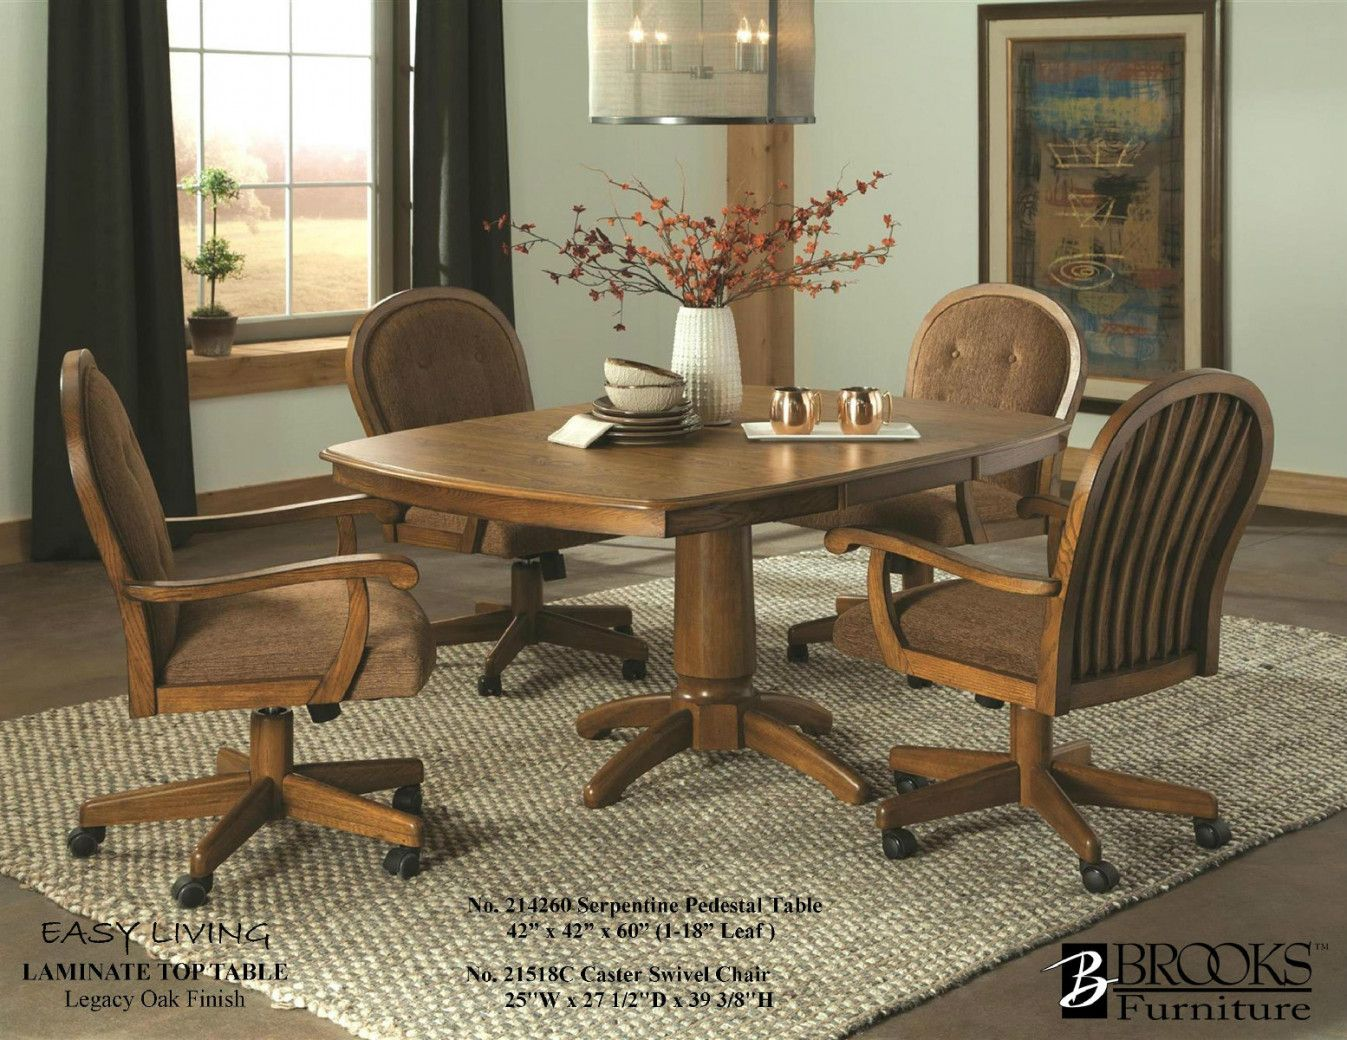 99 Dining Room Table With Swivel Chairs  Modern Rustic Furniture Captivating Leather Swivel Dining Room Chairs Inspiration Design